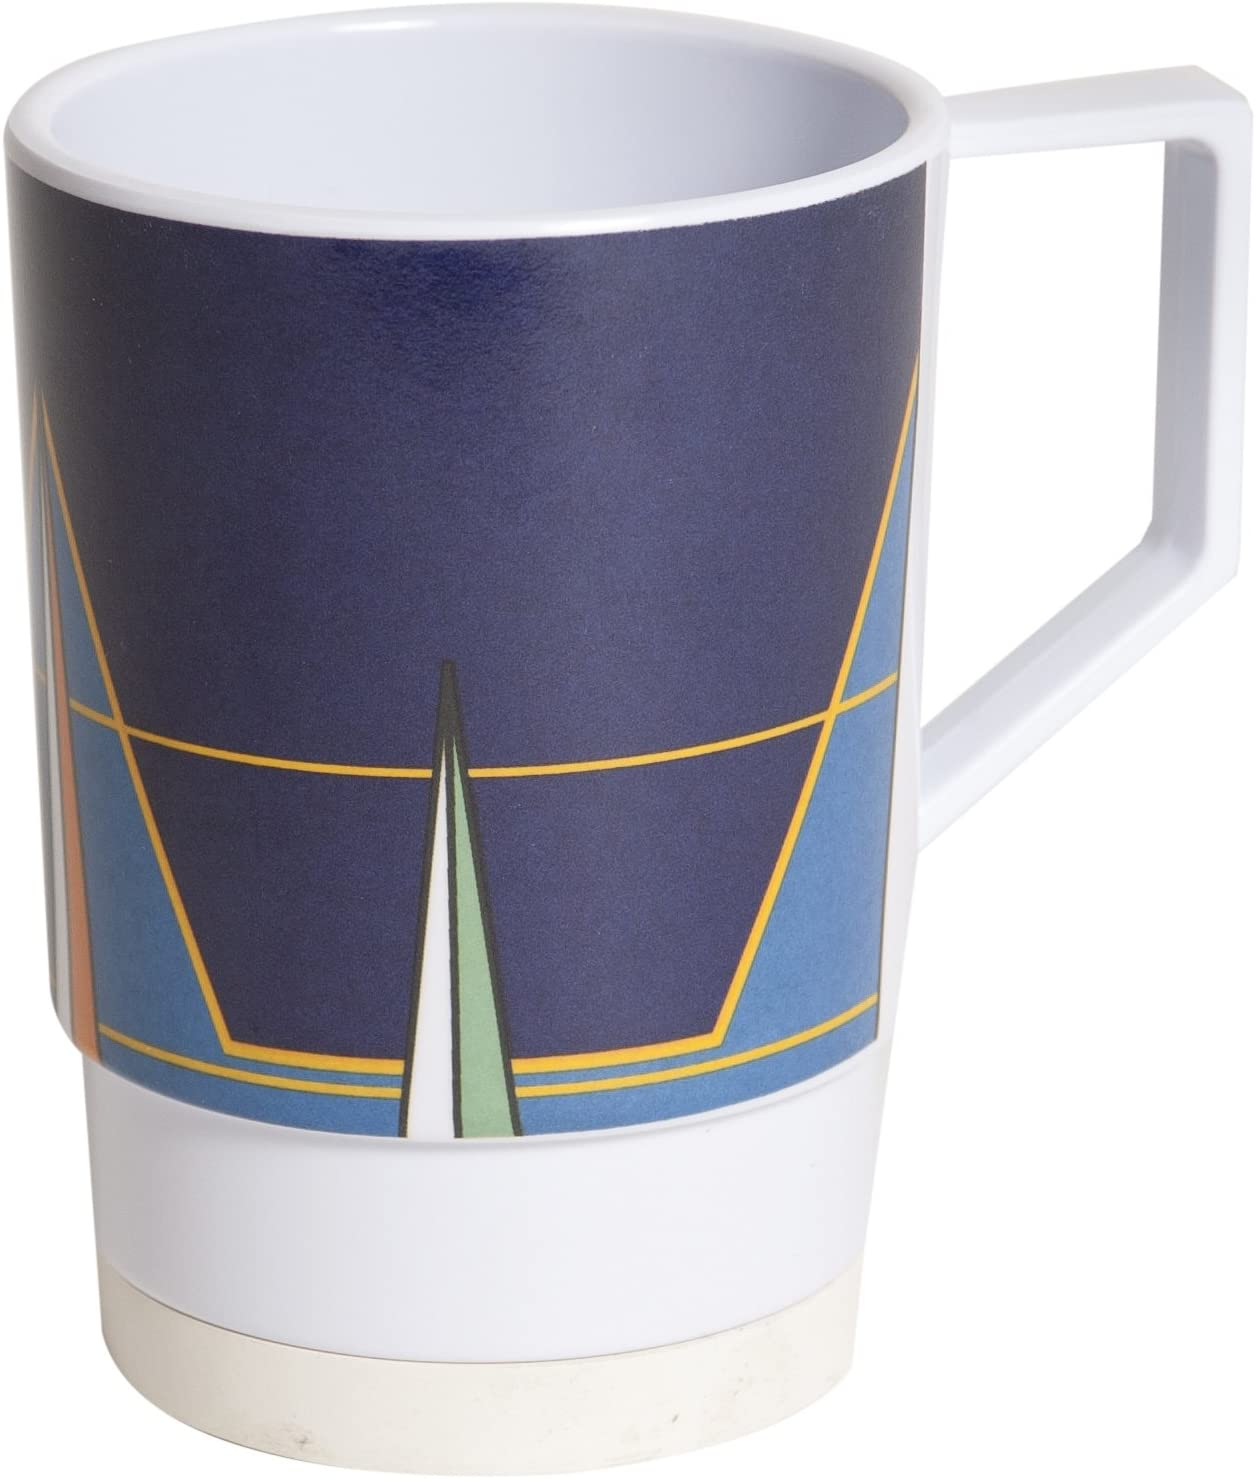 NEW before selling ☆ Galleyware Blue Compass 2021 Melamine Non-Skid 6 Nesting Mugs Set Of